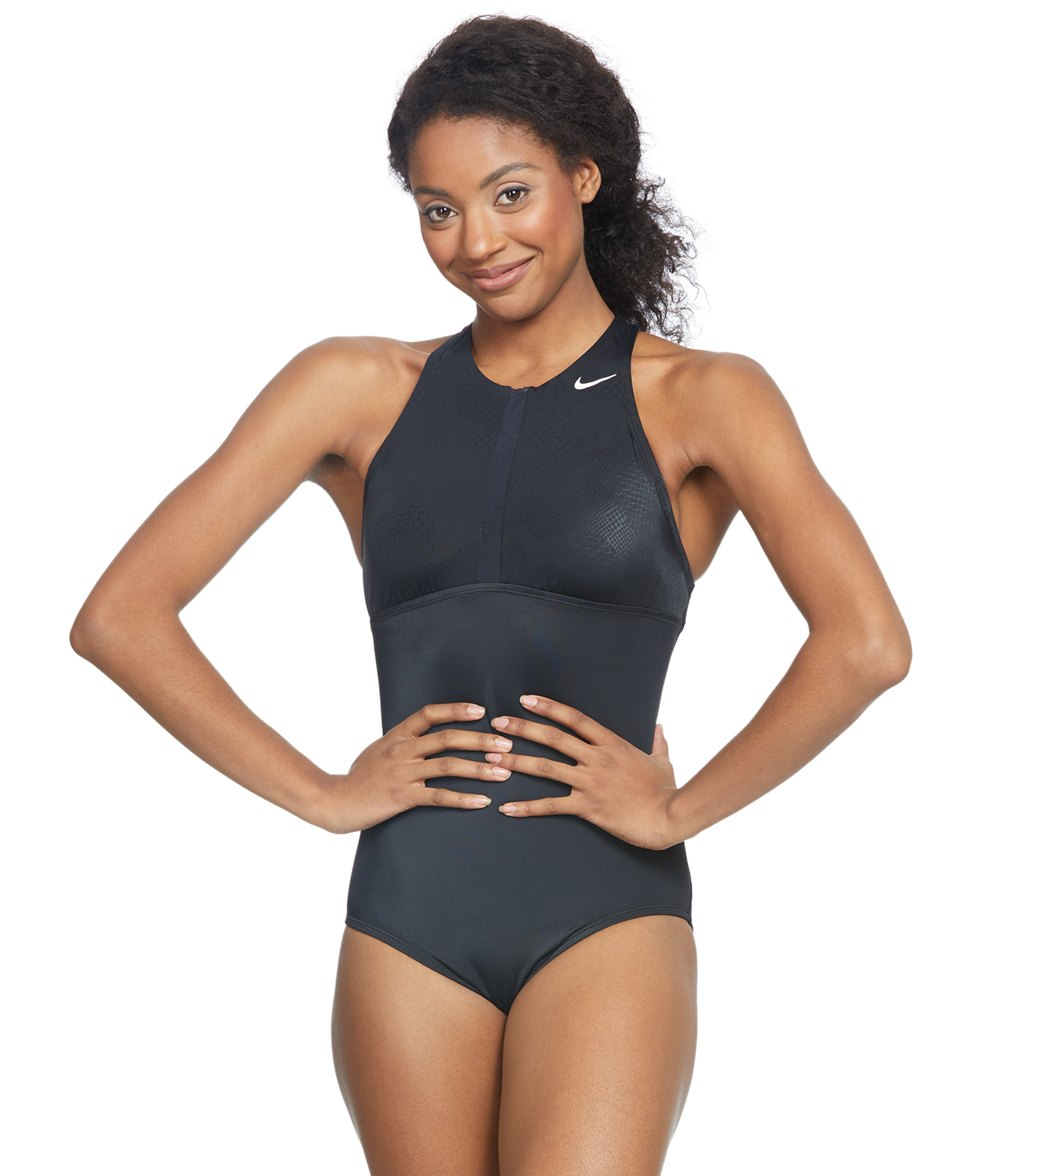 e2434d565 Nike Optic Camo High Neck One Piece Swimsuit at SwimOutlet.com - Free  Shipping